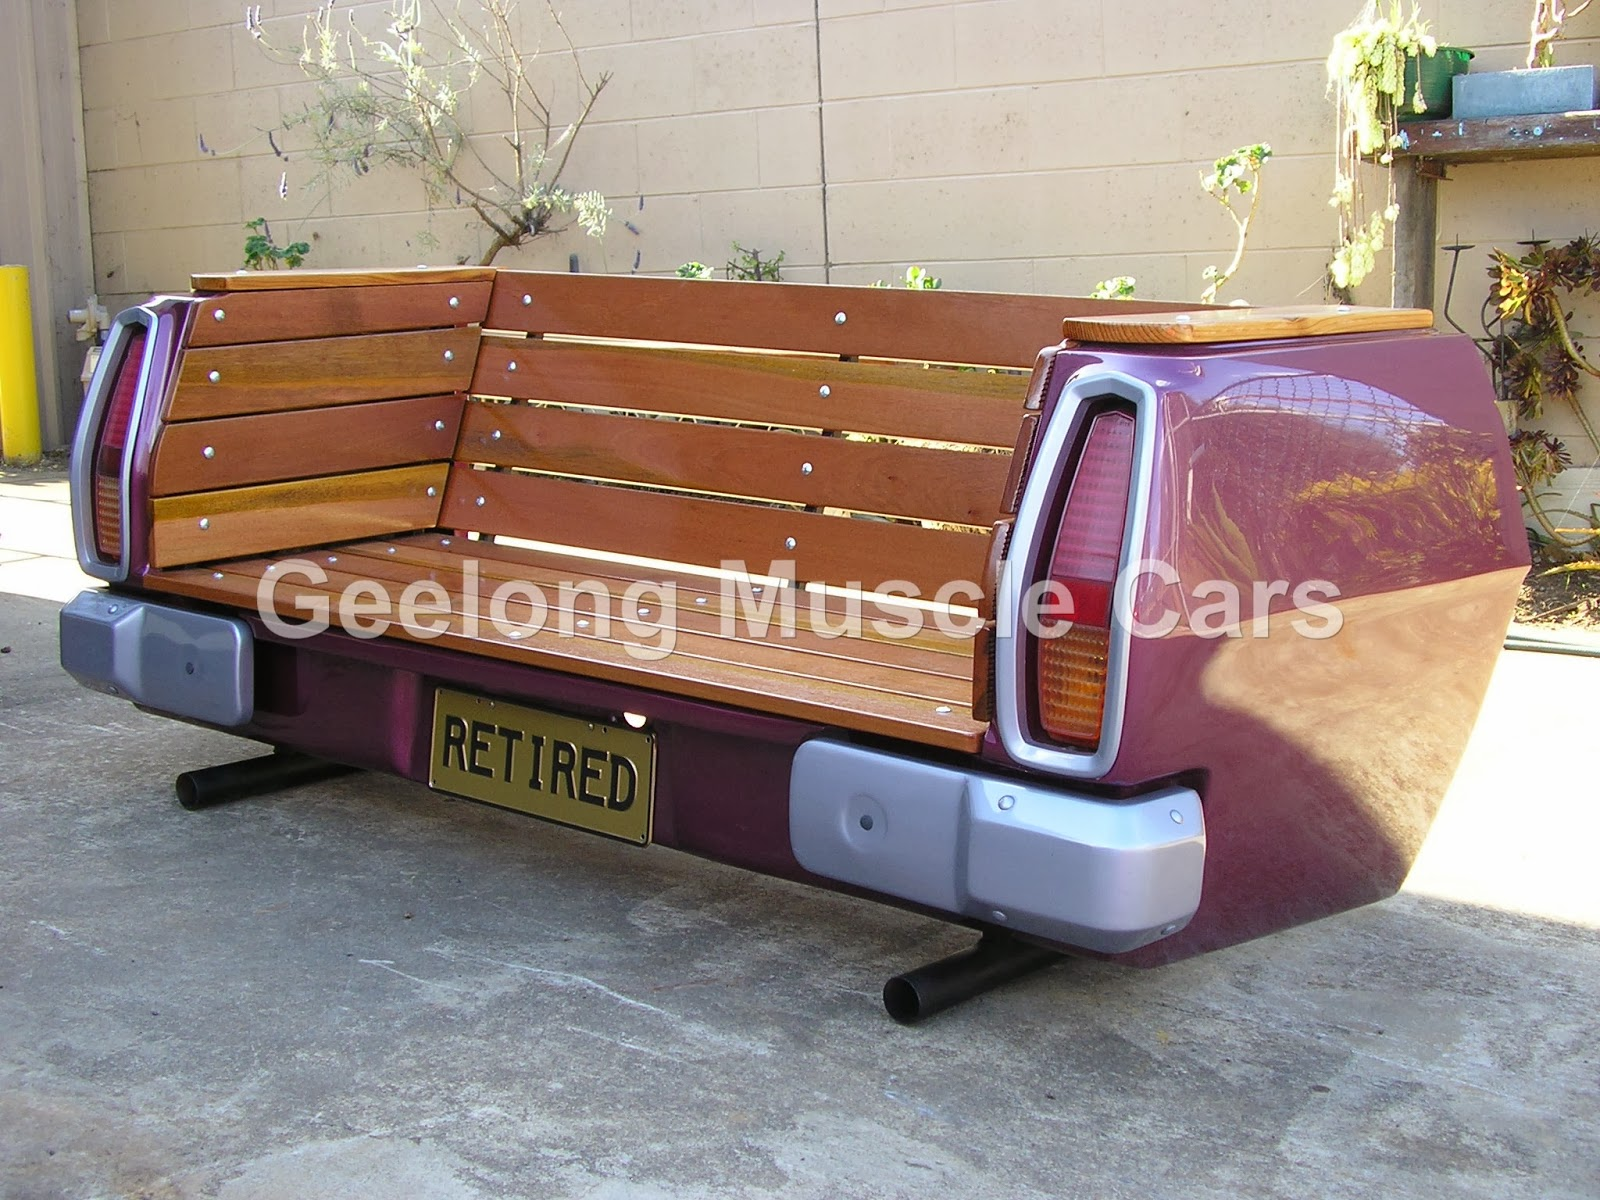 Marvelous photograph of Geelong Muscle Cars: HQ UTE BENCH CHAIR CAR COUCH with #804833 color and 1600x1200 pixels